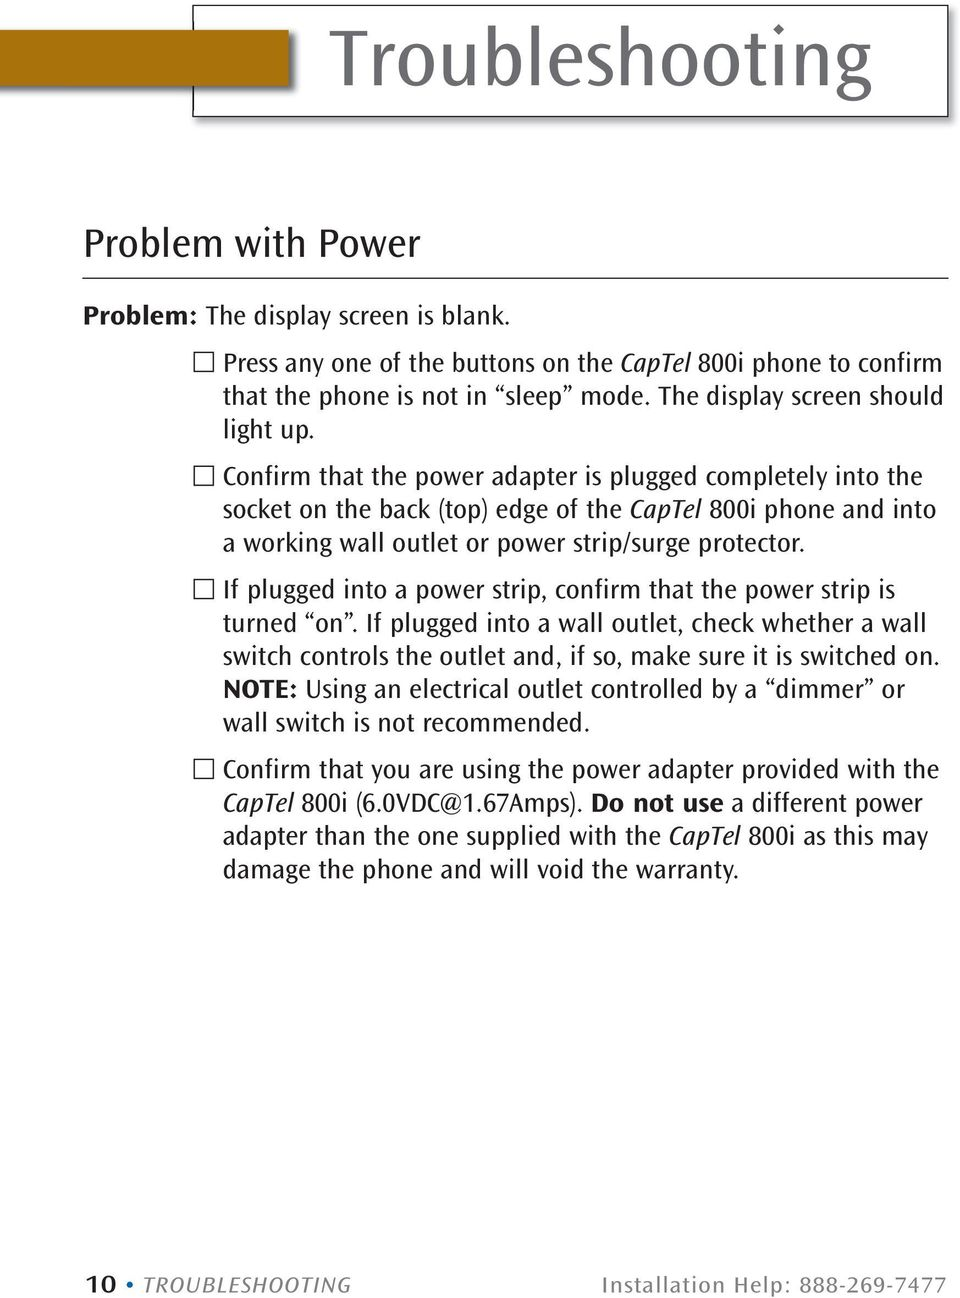 Confirm that the power adapter is plugged completely into the socket on the back (top) edge of the CapTel 800i phone and into a working wall outlet or power strip/surge protector.